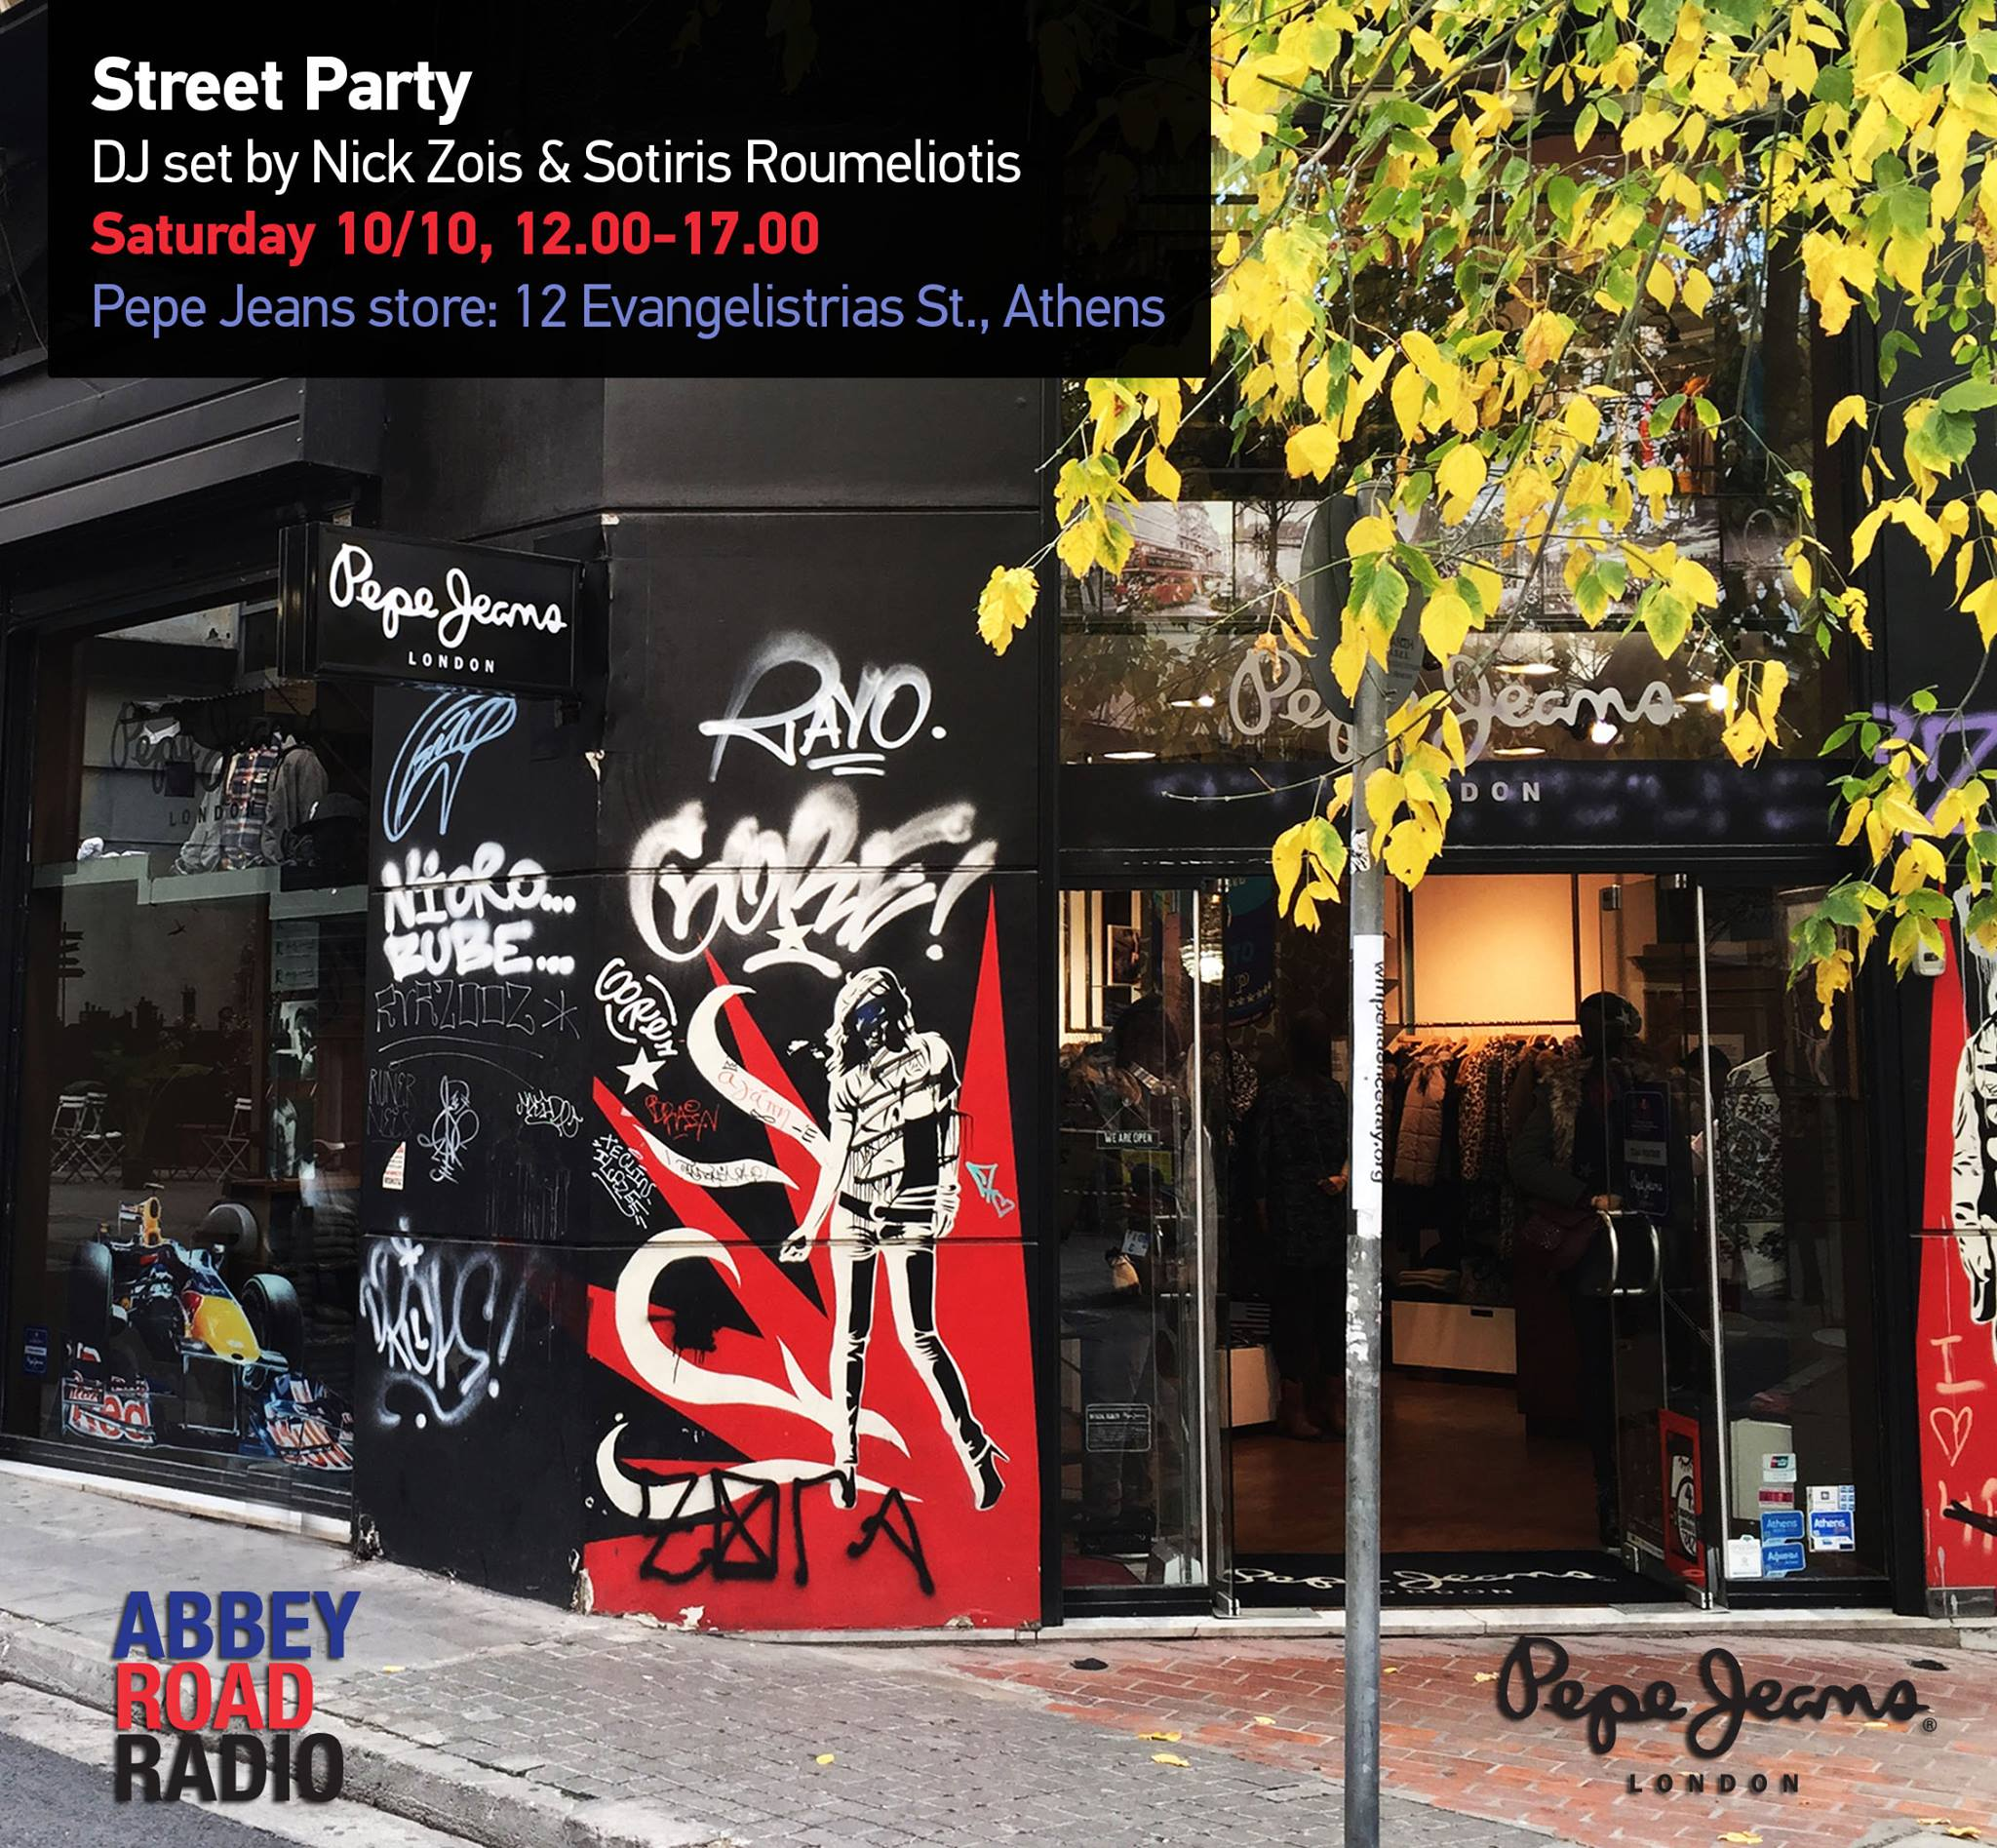 Pepe jeans store streetparty 10 10 special - Pepe jeans showroom ...